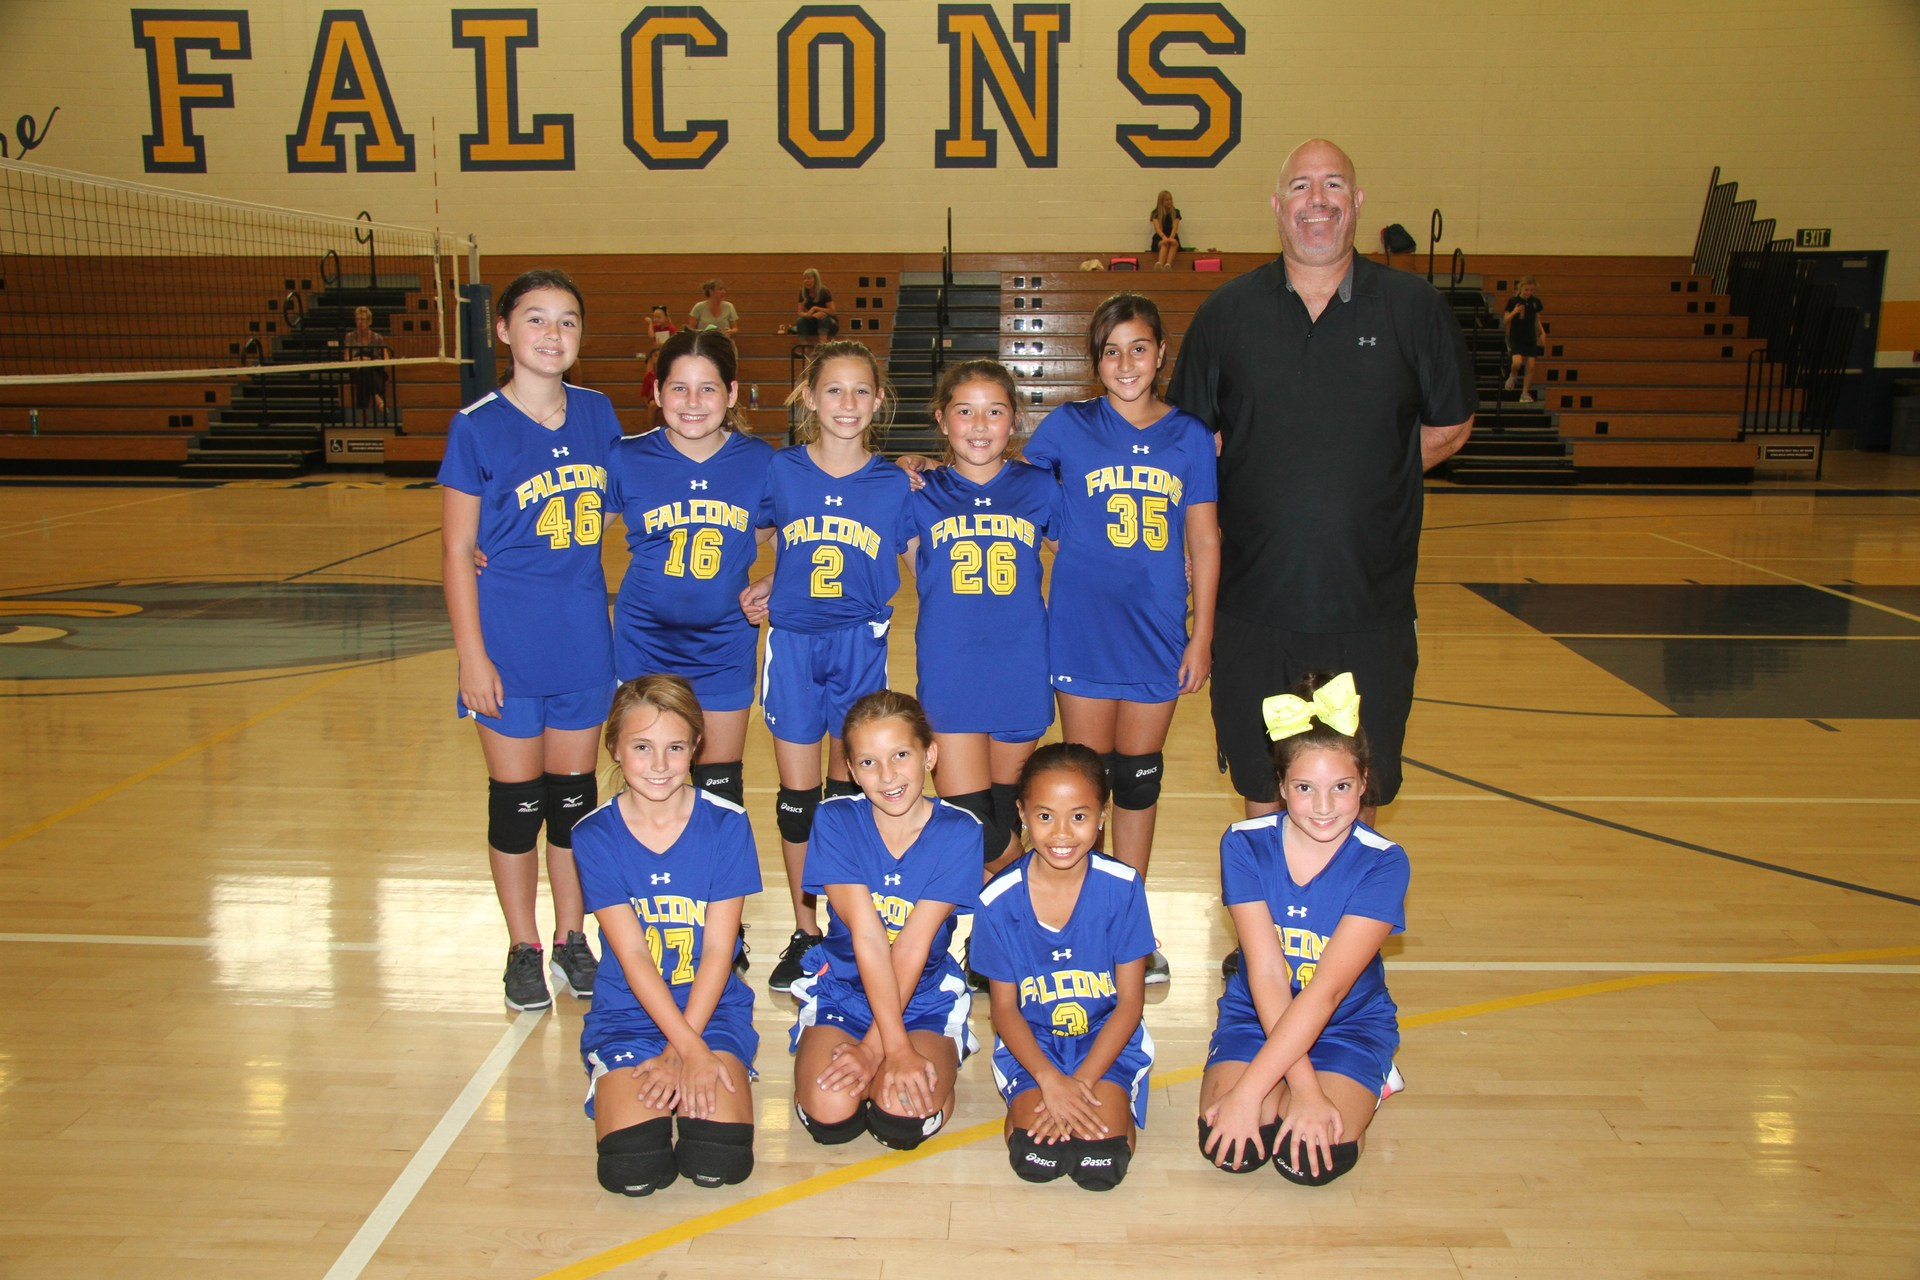 team photo of canyon B girls volleyball